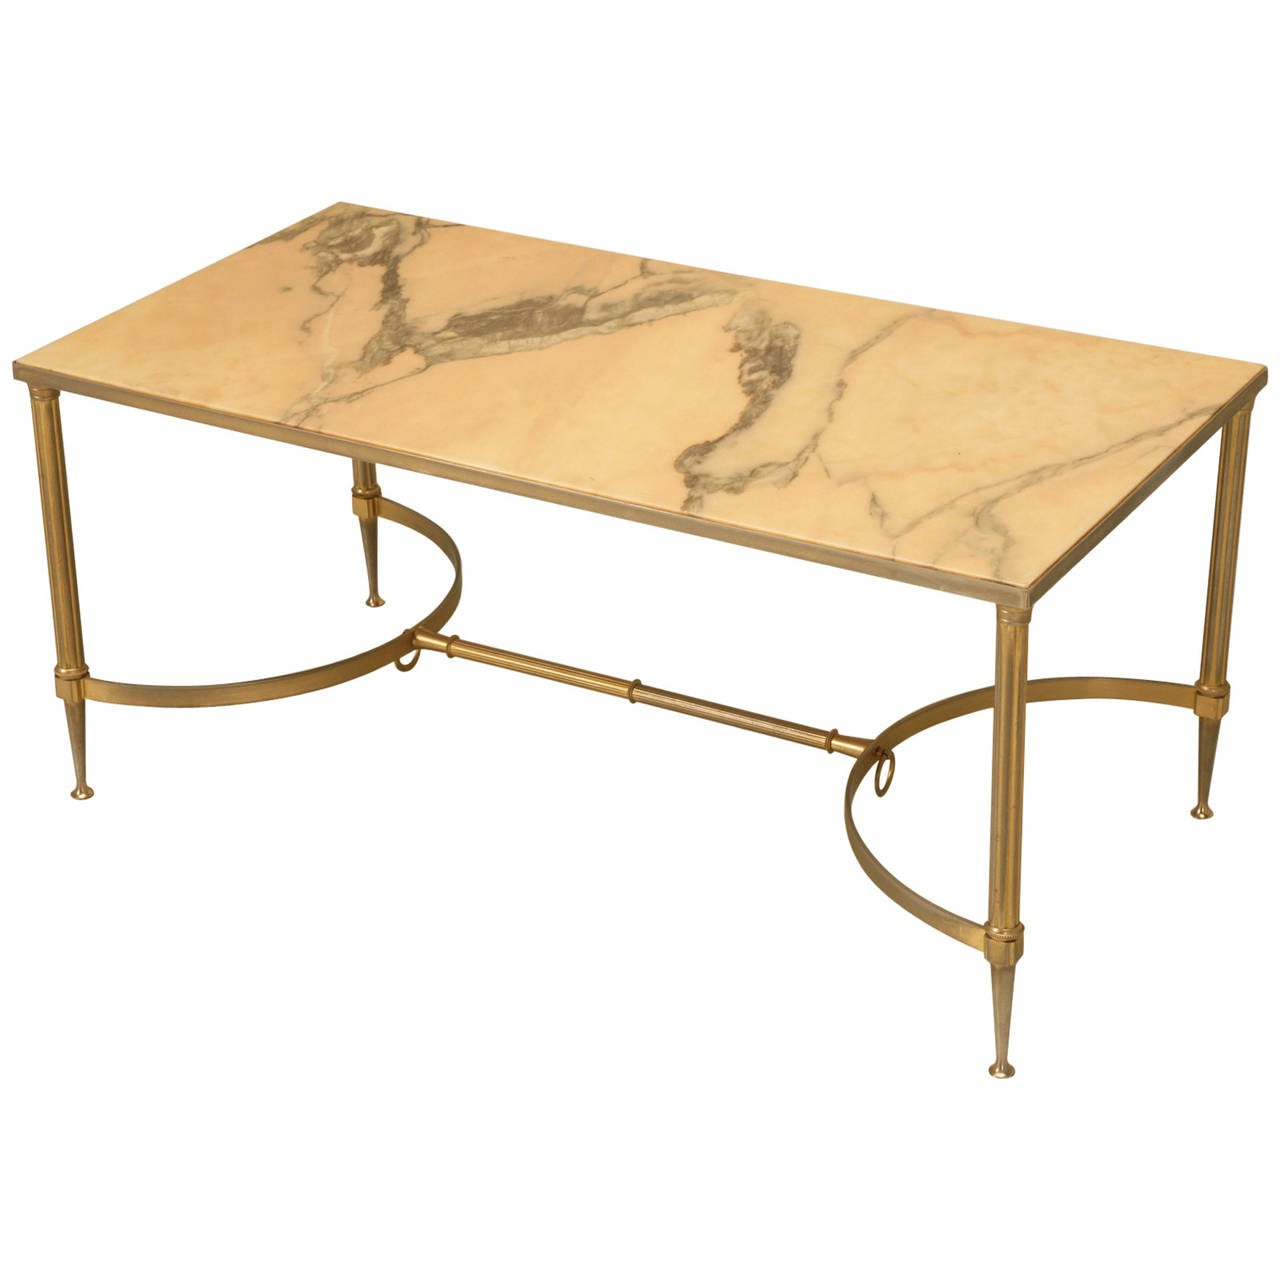 Mid Century Modern Marble Table: Mid-Century Modern Marble And Brass Coffee Table At 1stdibs